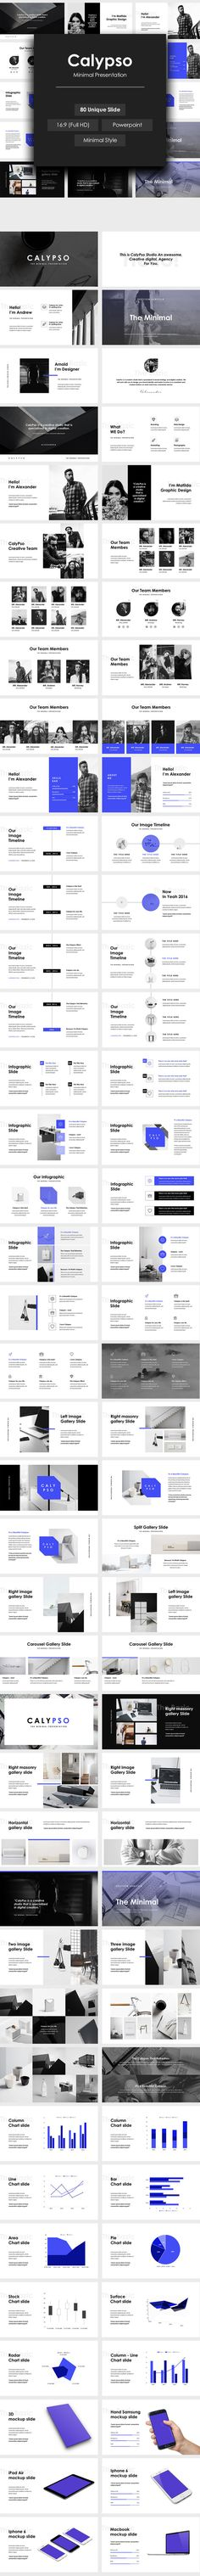 Calypso Minimal Powerpoint Template by Domi Design on @creativemarket